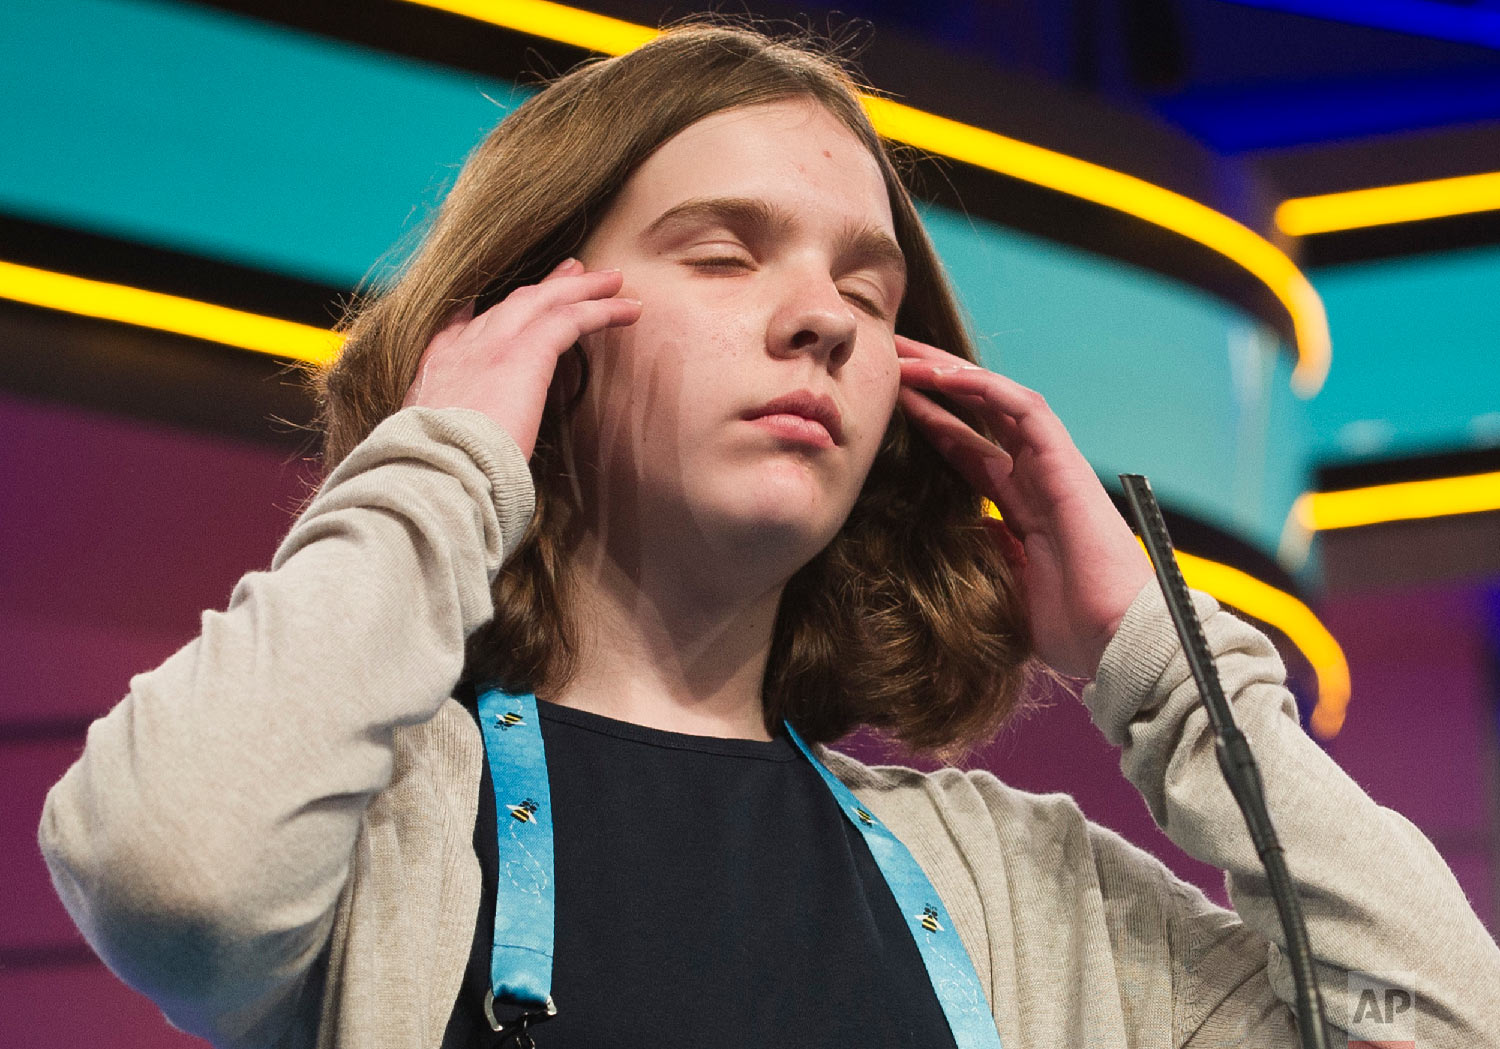 Erin Howard, 13, from Huntsville, Ala., spells her word correctly during the third round of the Scripps National Spelling Bee in Oxon Hill, Md., Wednesday, May 30, 2018. (AP Photo/Cliff Owen)